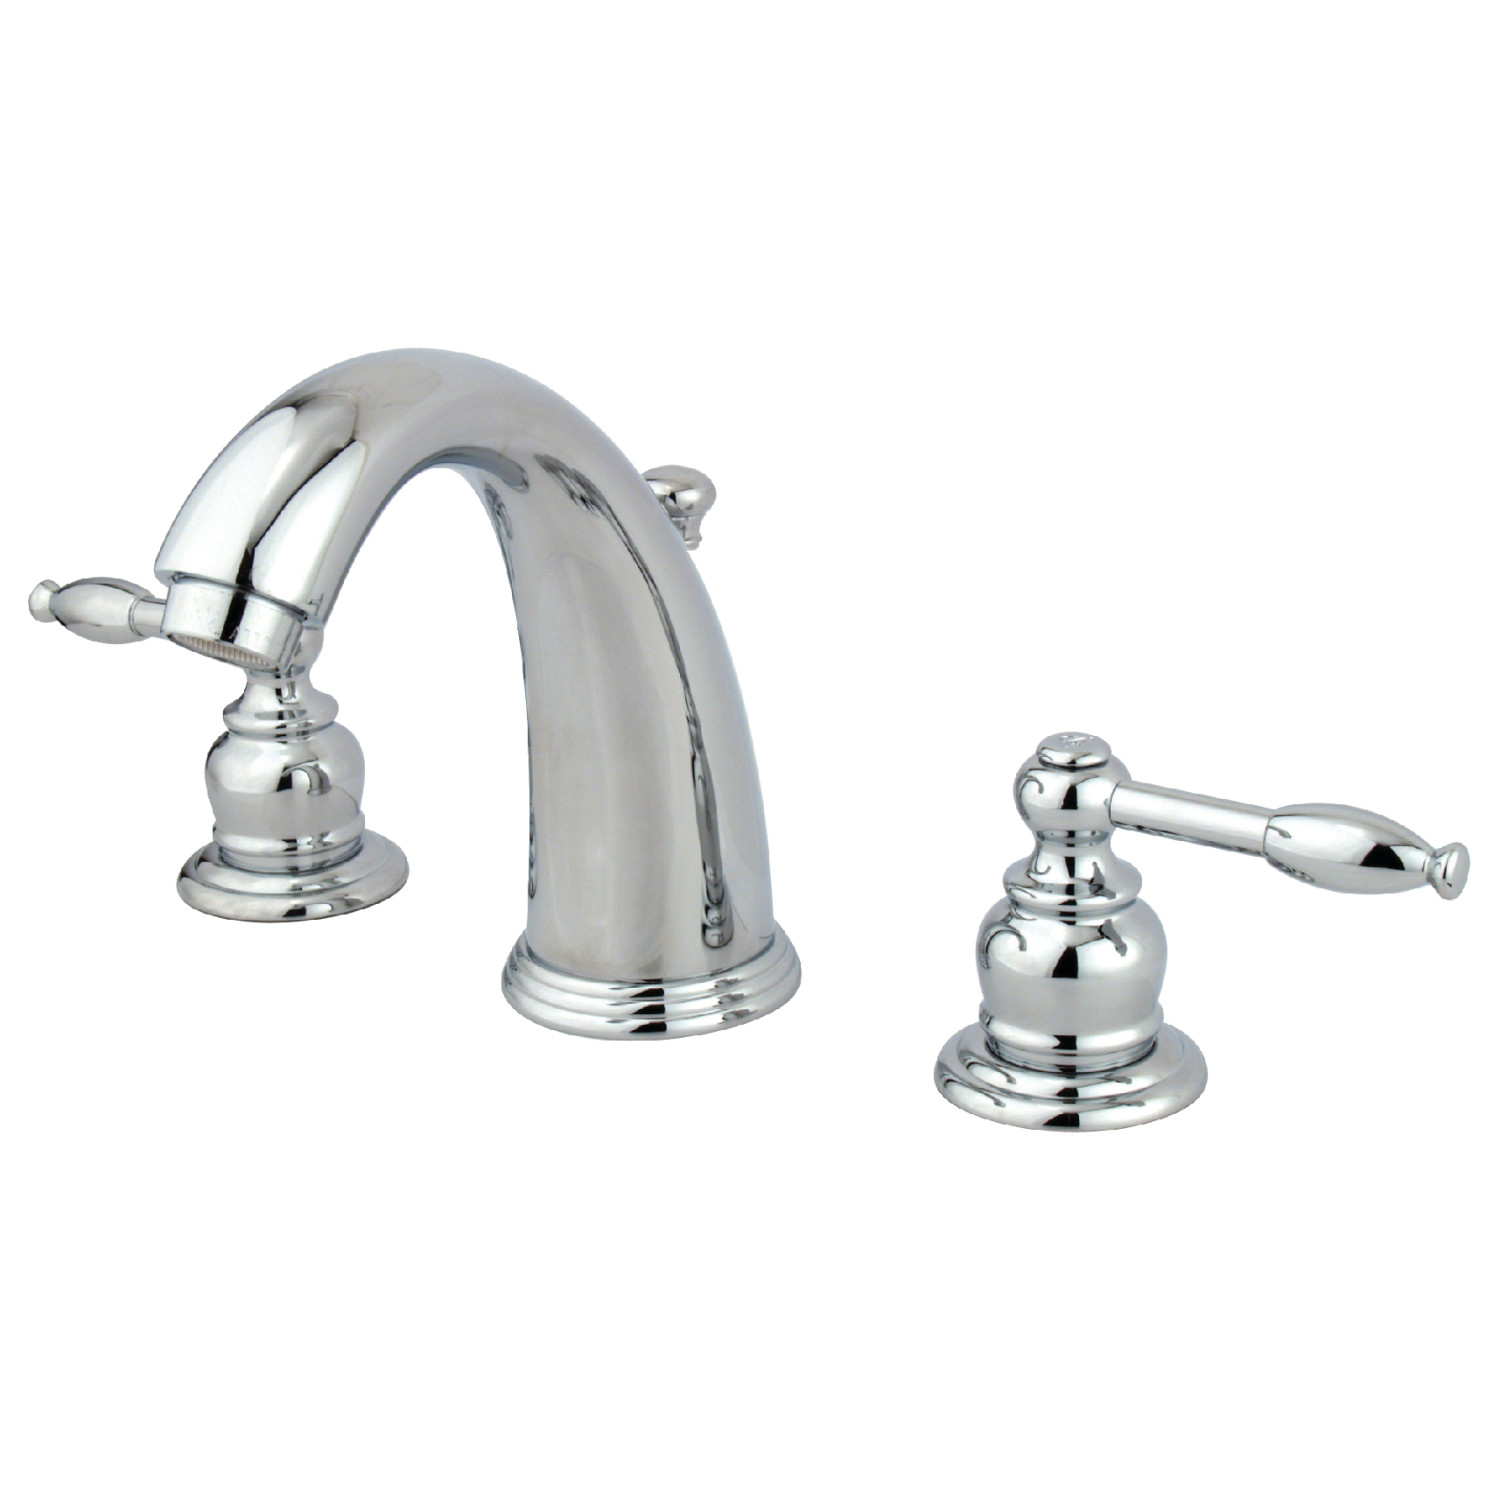 Traditional Two-Handle Three-Hole Deck Mounted Widespread Bathroom Faucet with Plastic Pop-Up in Polished Chrome with 4 Color Options